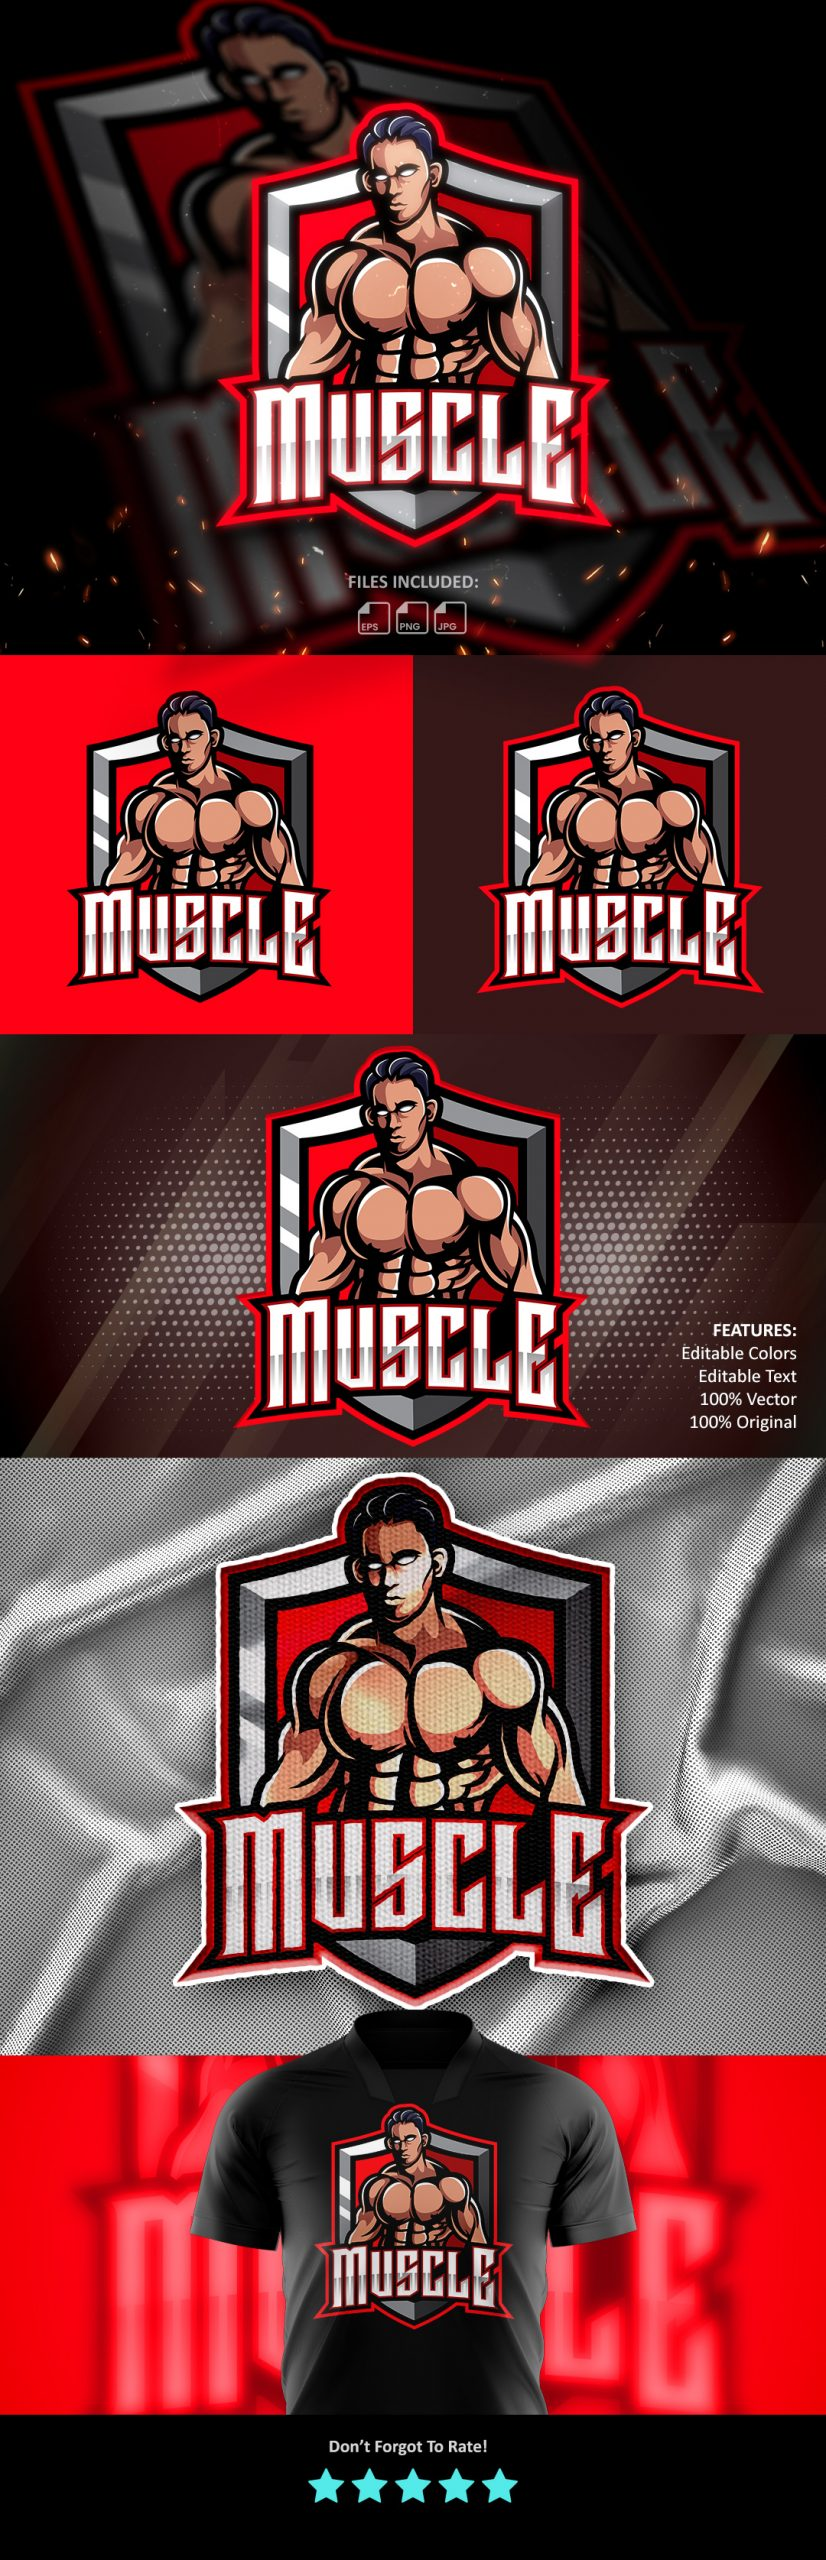 Free-Muscle-Fighter-Esports-Mascot-Logo-Download